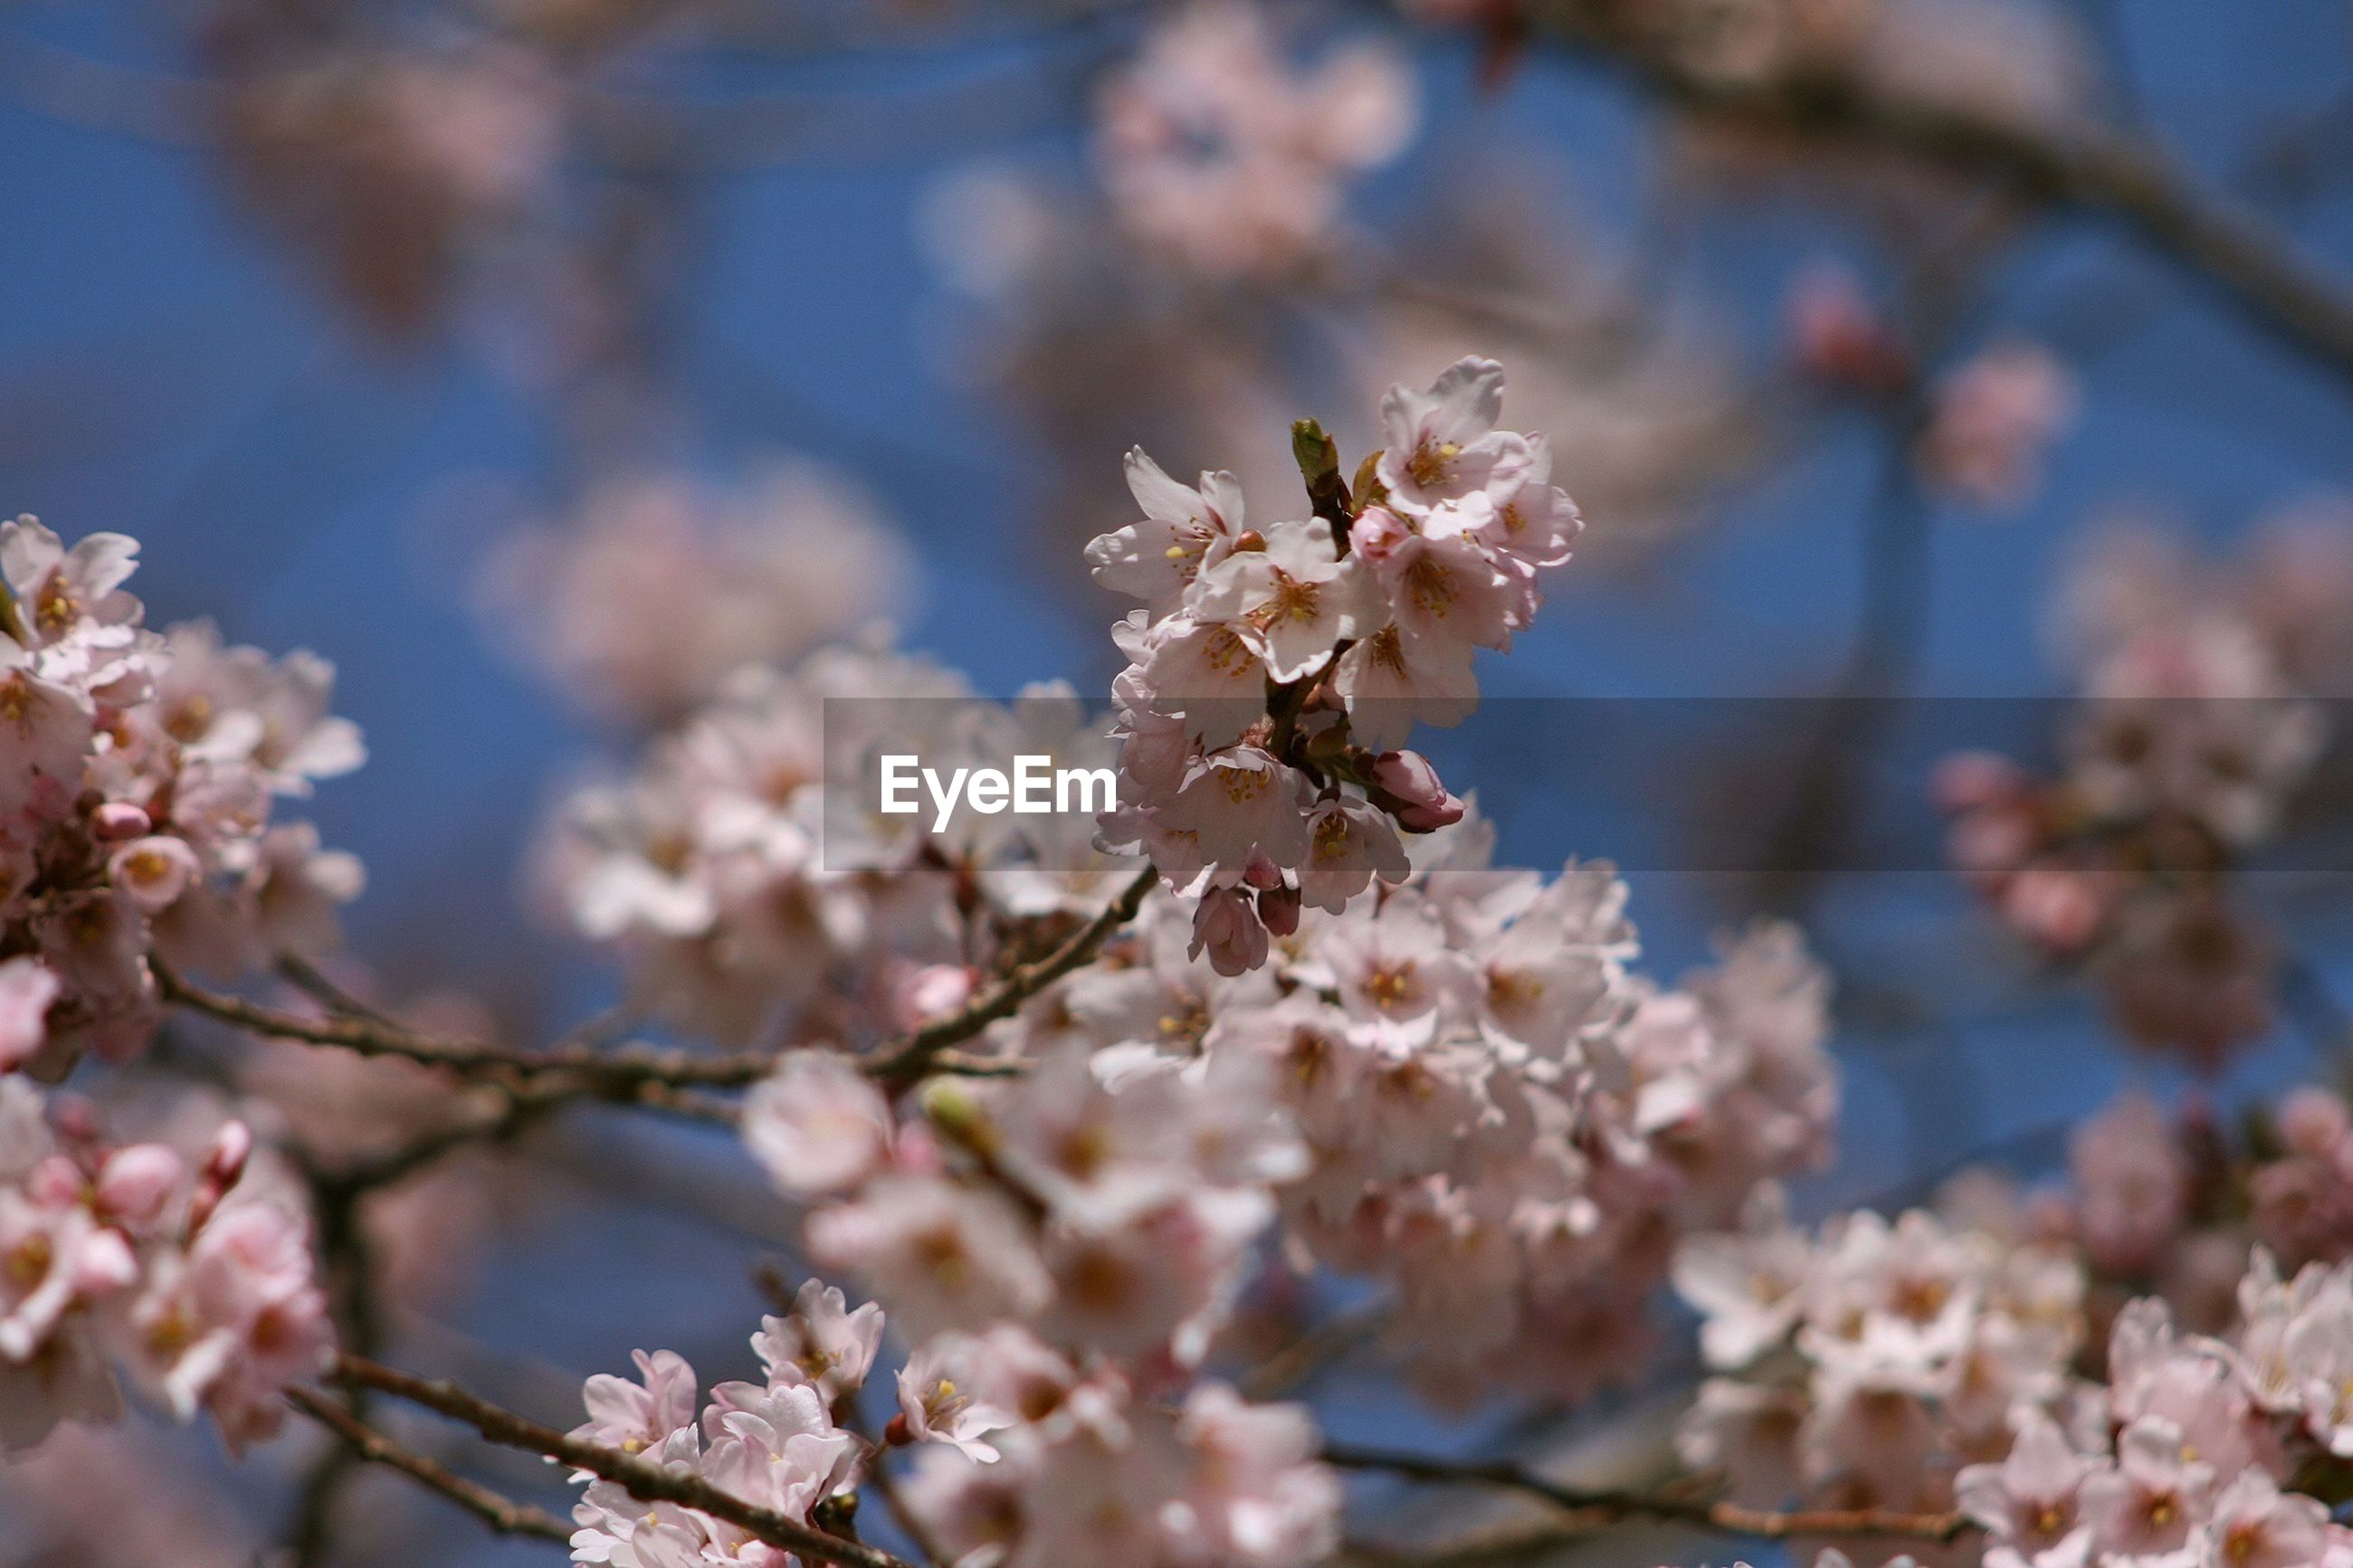 flower, branch, freshness, cherry blossom, tree, fragility, growth, beauty in nature, blossom, cherry tree, nature, focus on foreground, springtime, close-up, petal, in bloom, blooming, low angle view, twig, pink color